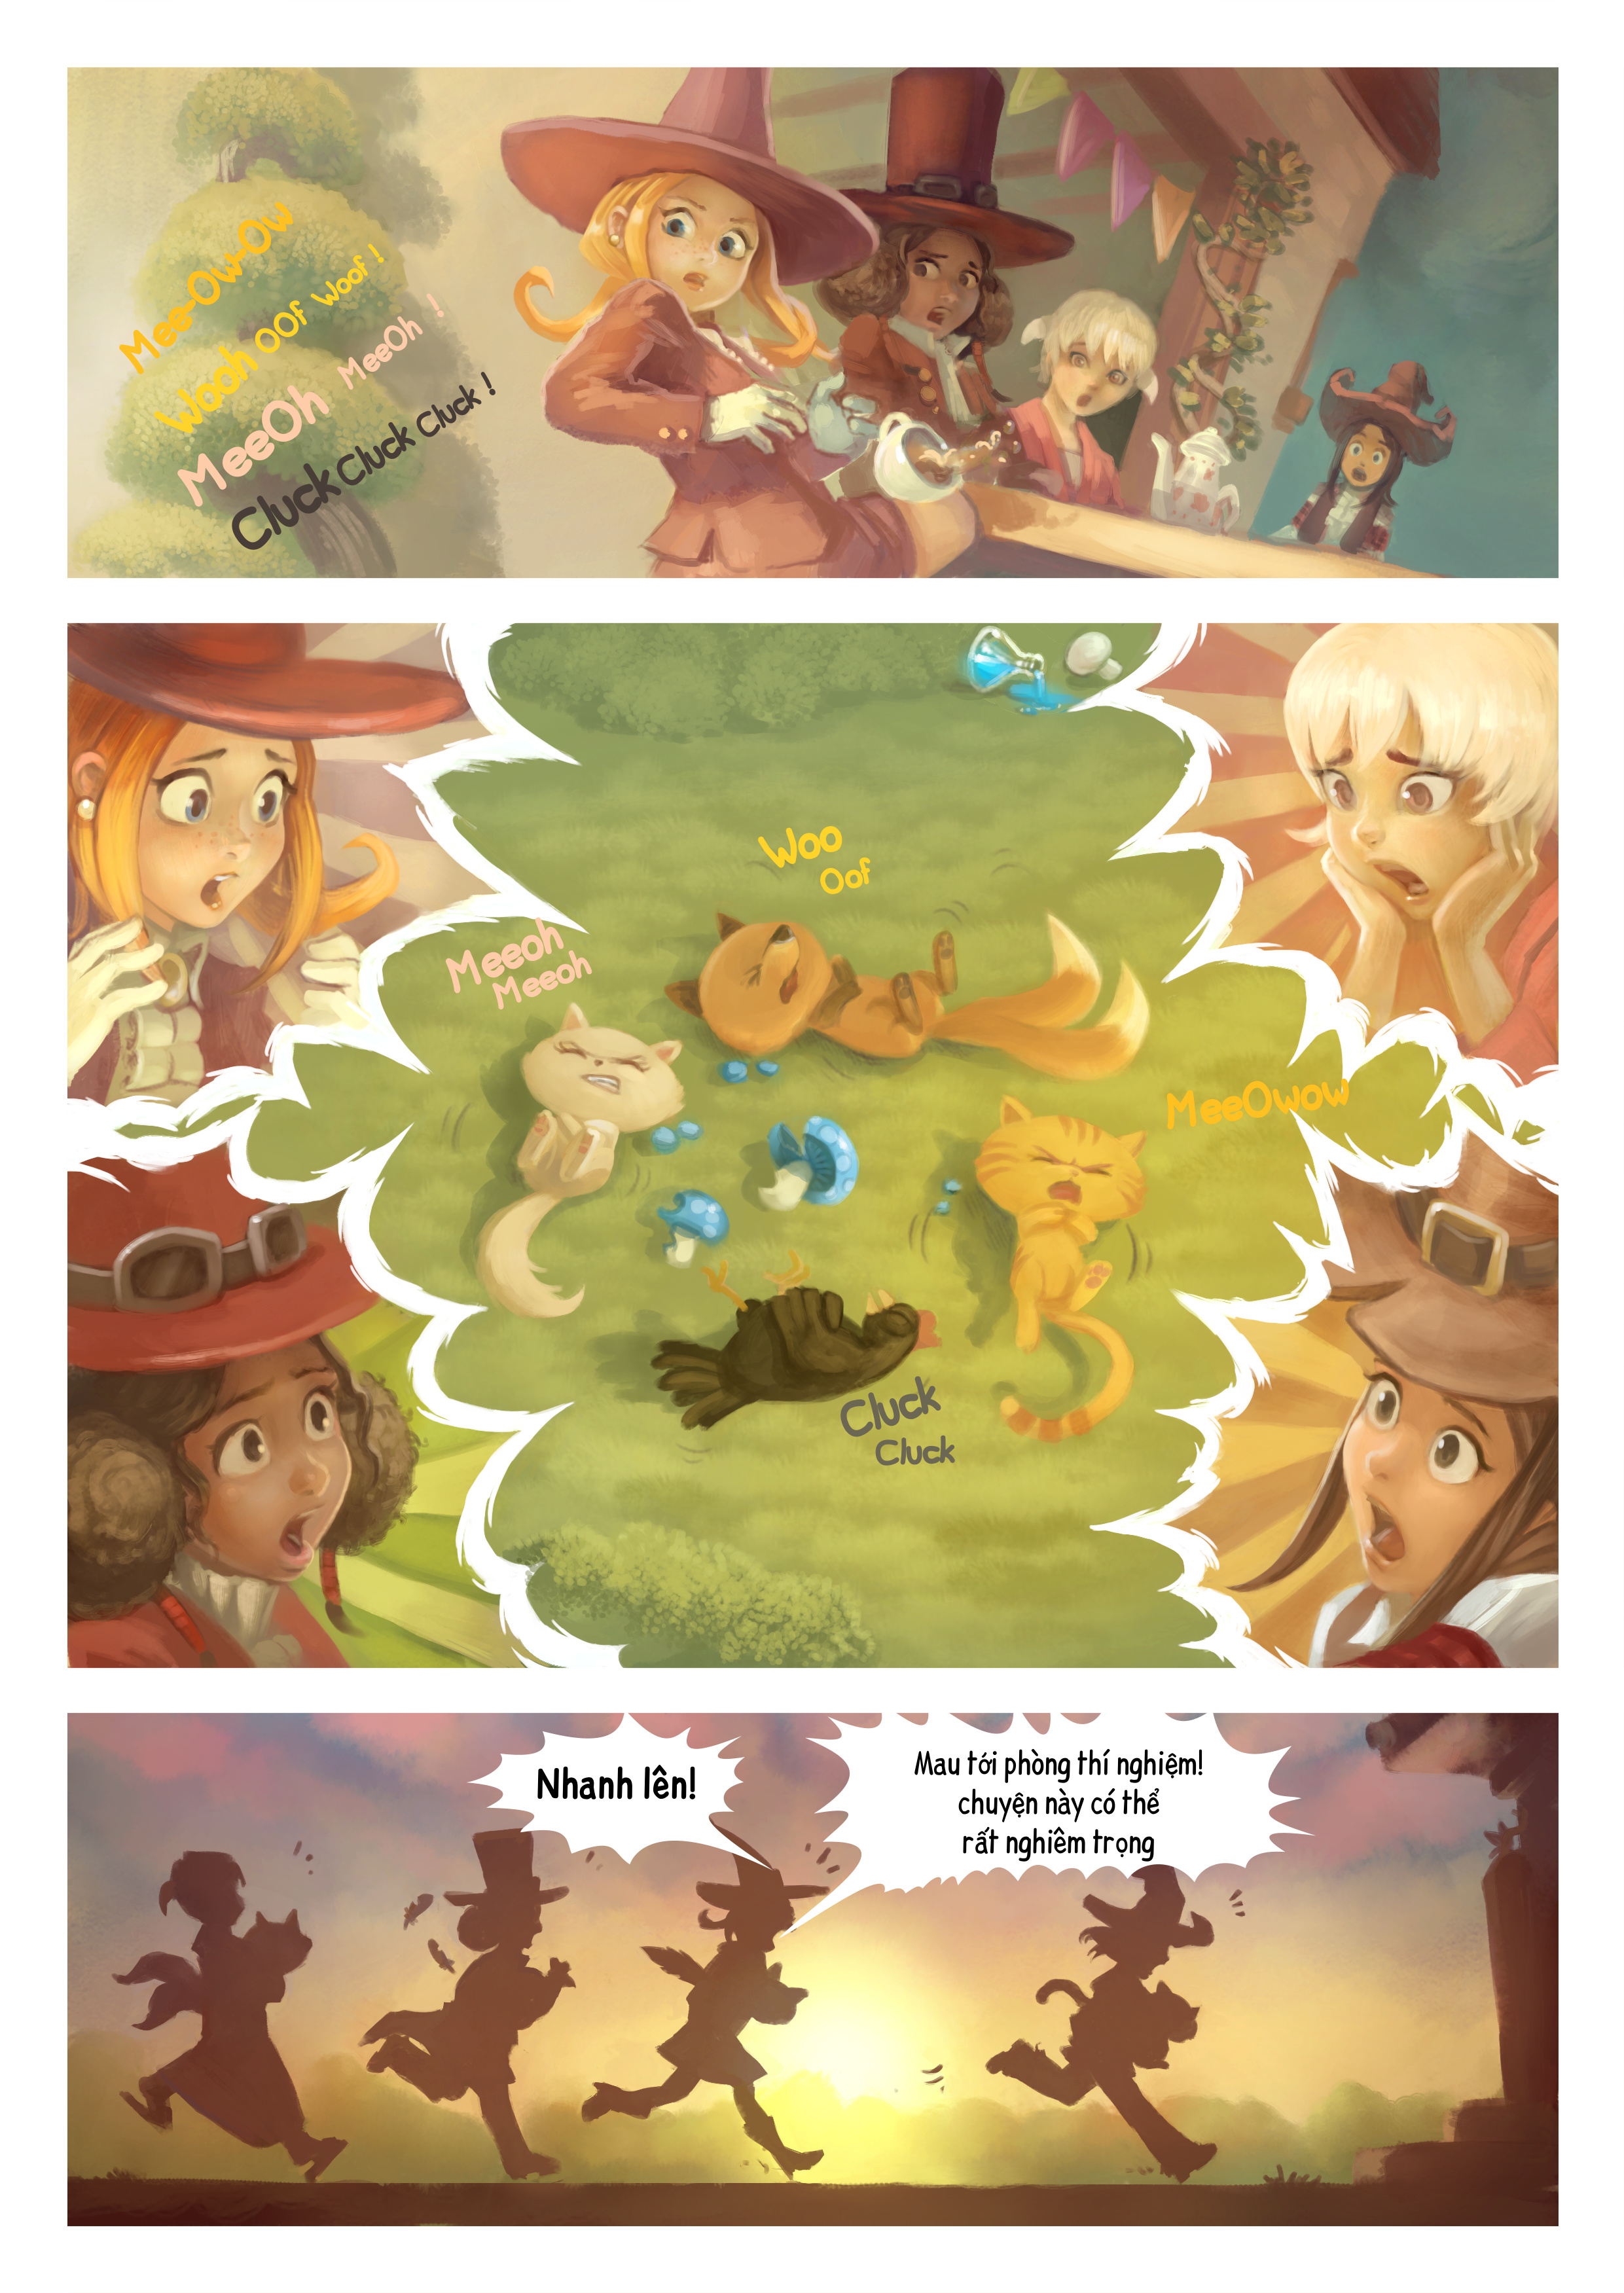 A webcomic page of Pepper&Carrot, Tập 9 [vi], trang 5